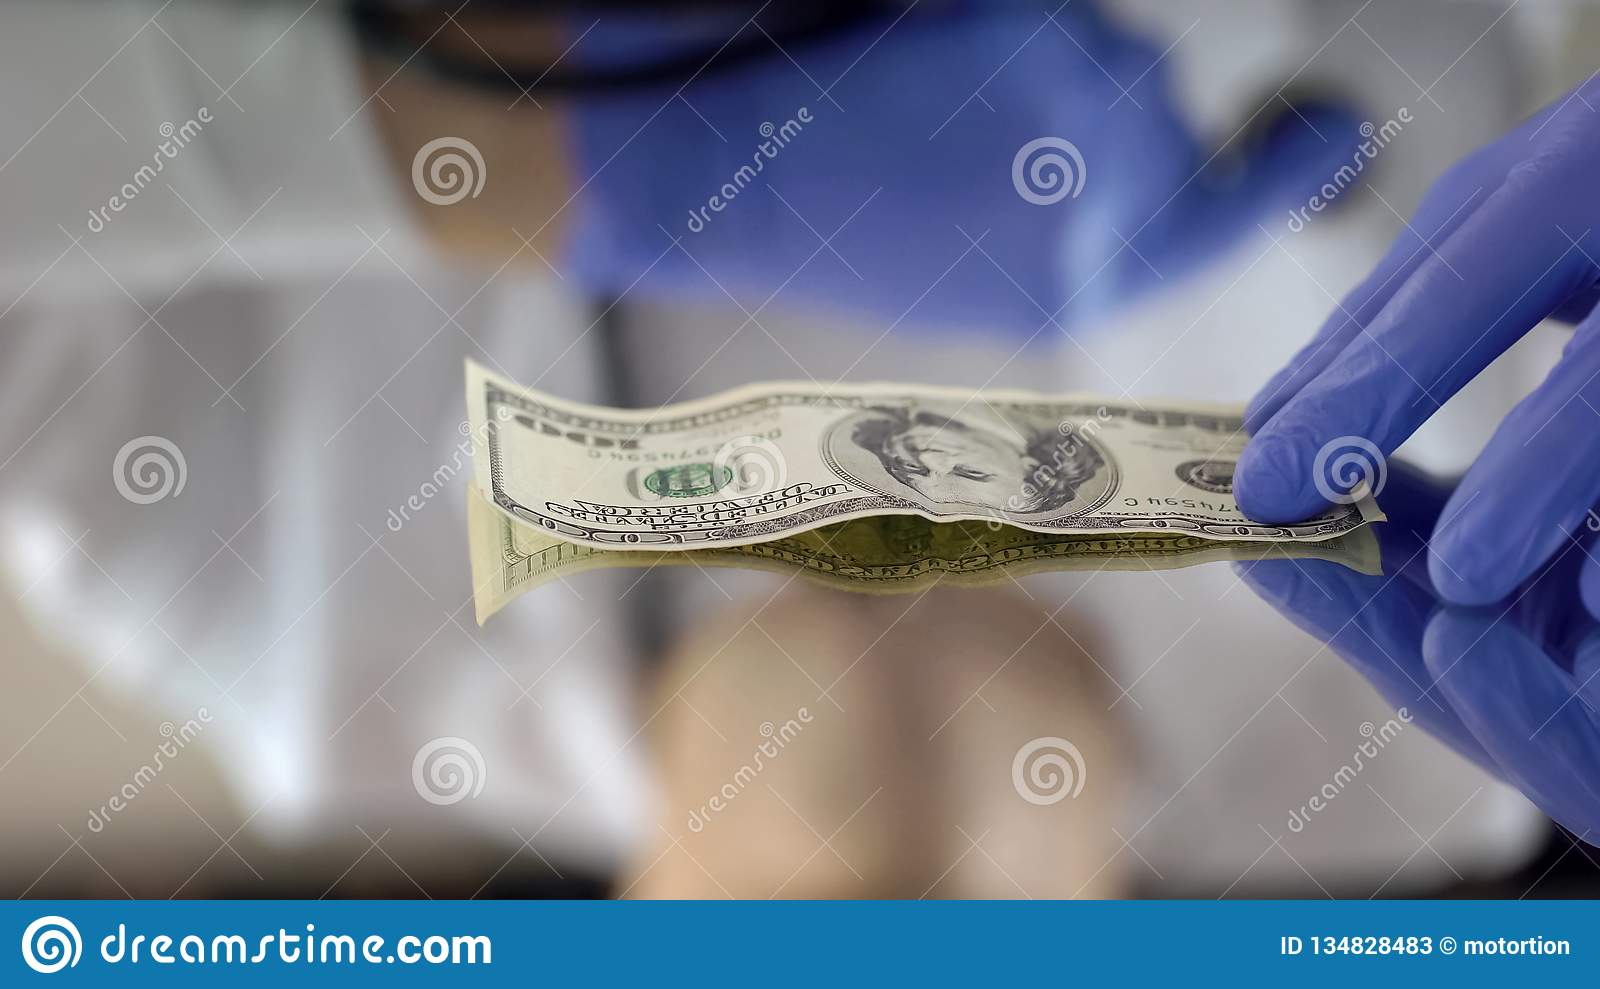 Hand in glove holding dollar banknote, expert checking suspicious money, fake